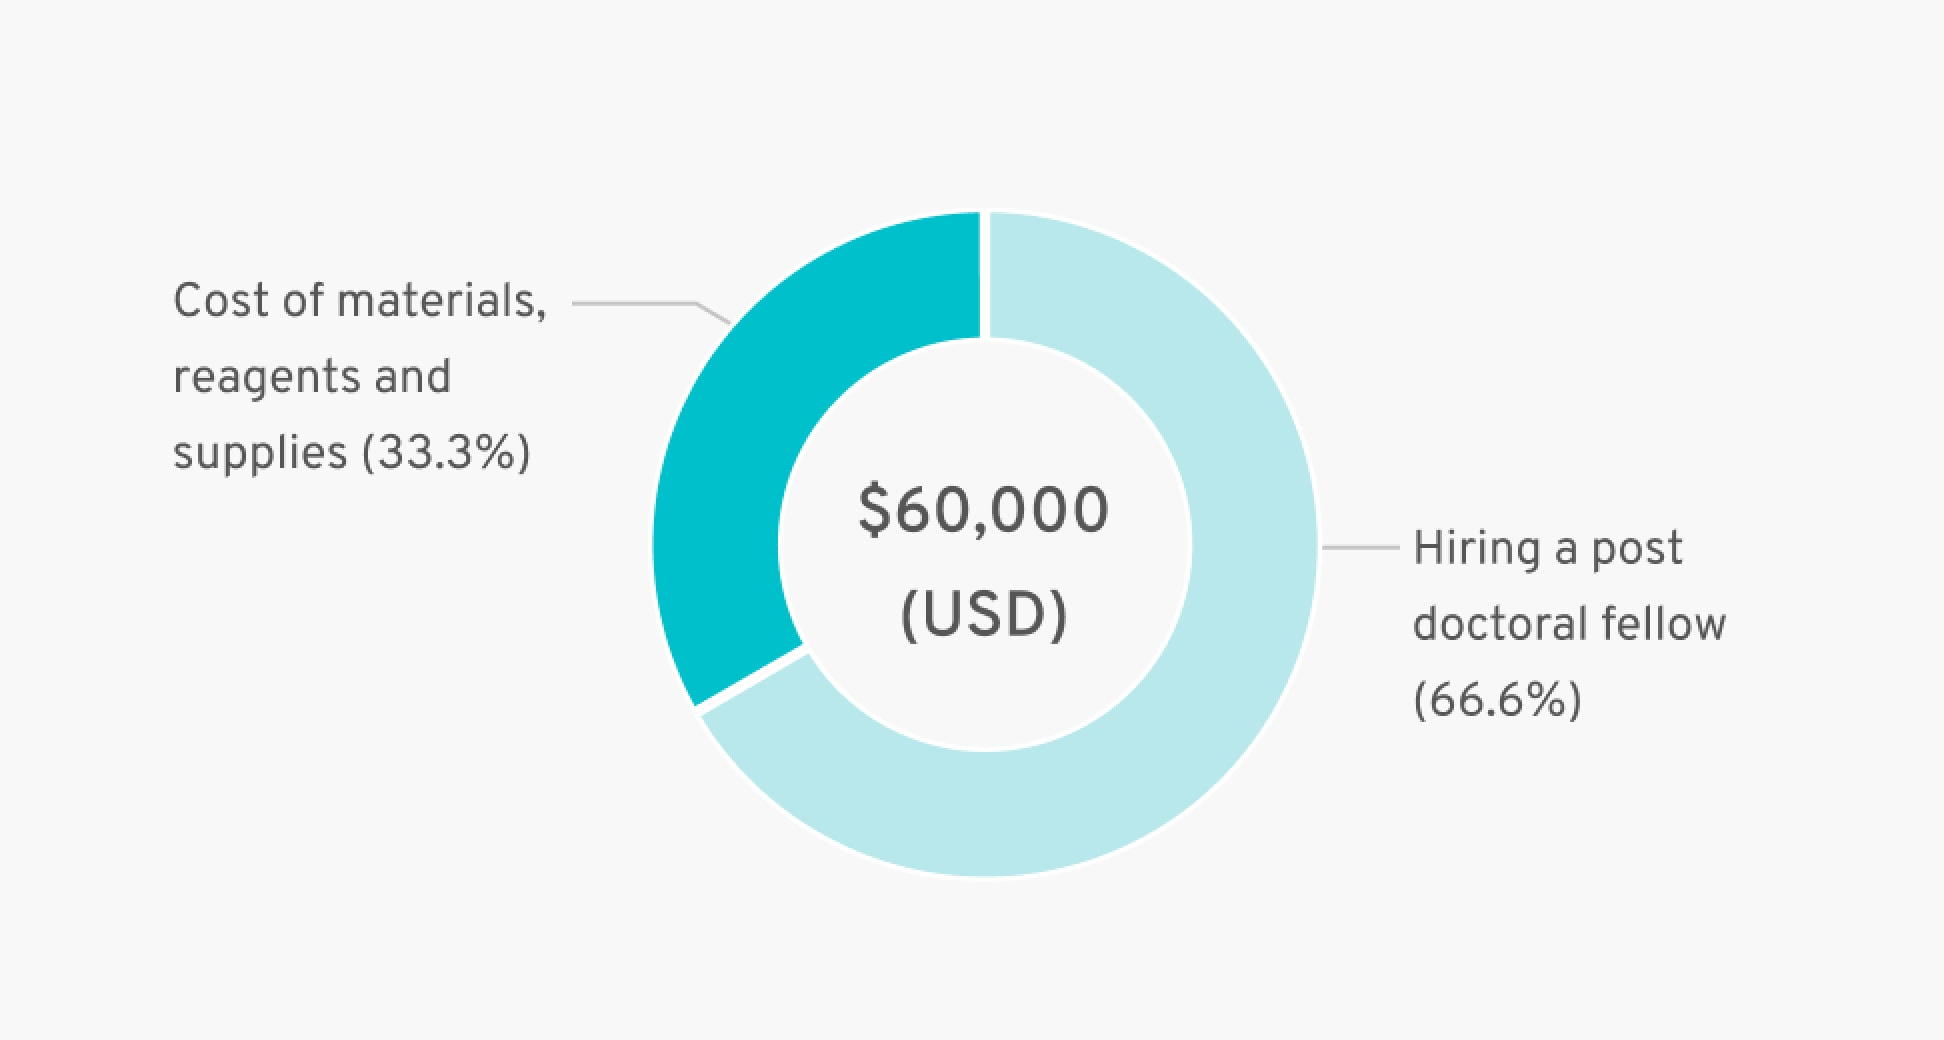 Cost of materials, reagents and supplies (33.3%), Hiring a post doctoral fellow (66.6%) = $60,000 (USD)